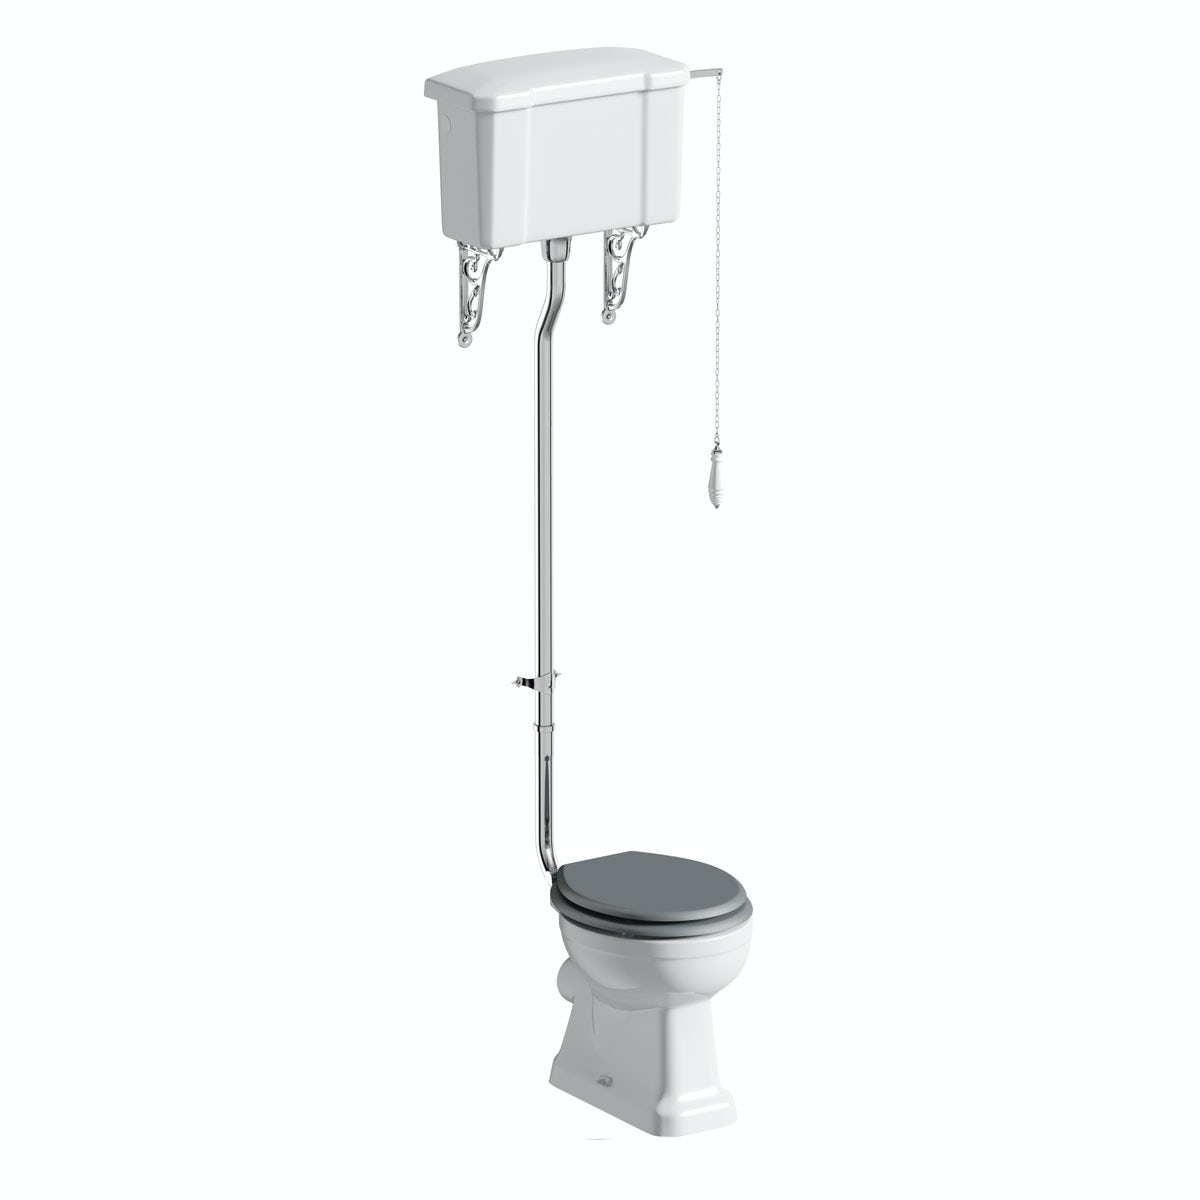 The Bath Co. Camberley high level toilet inc grey soft close seat with pan connector